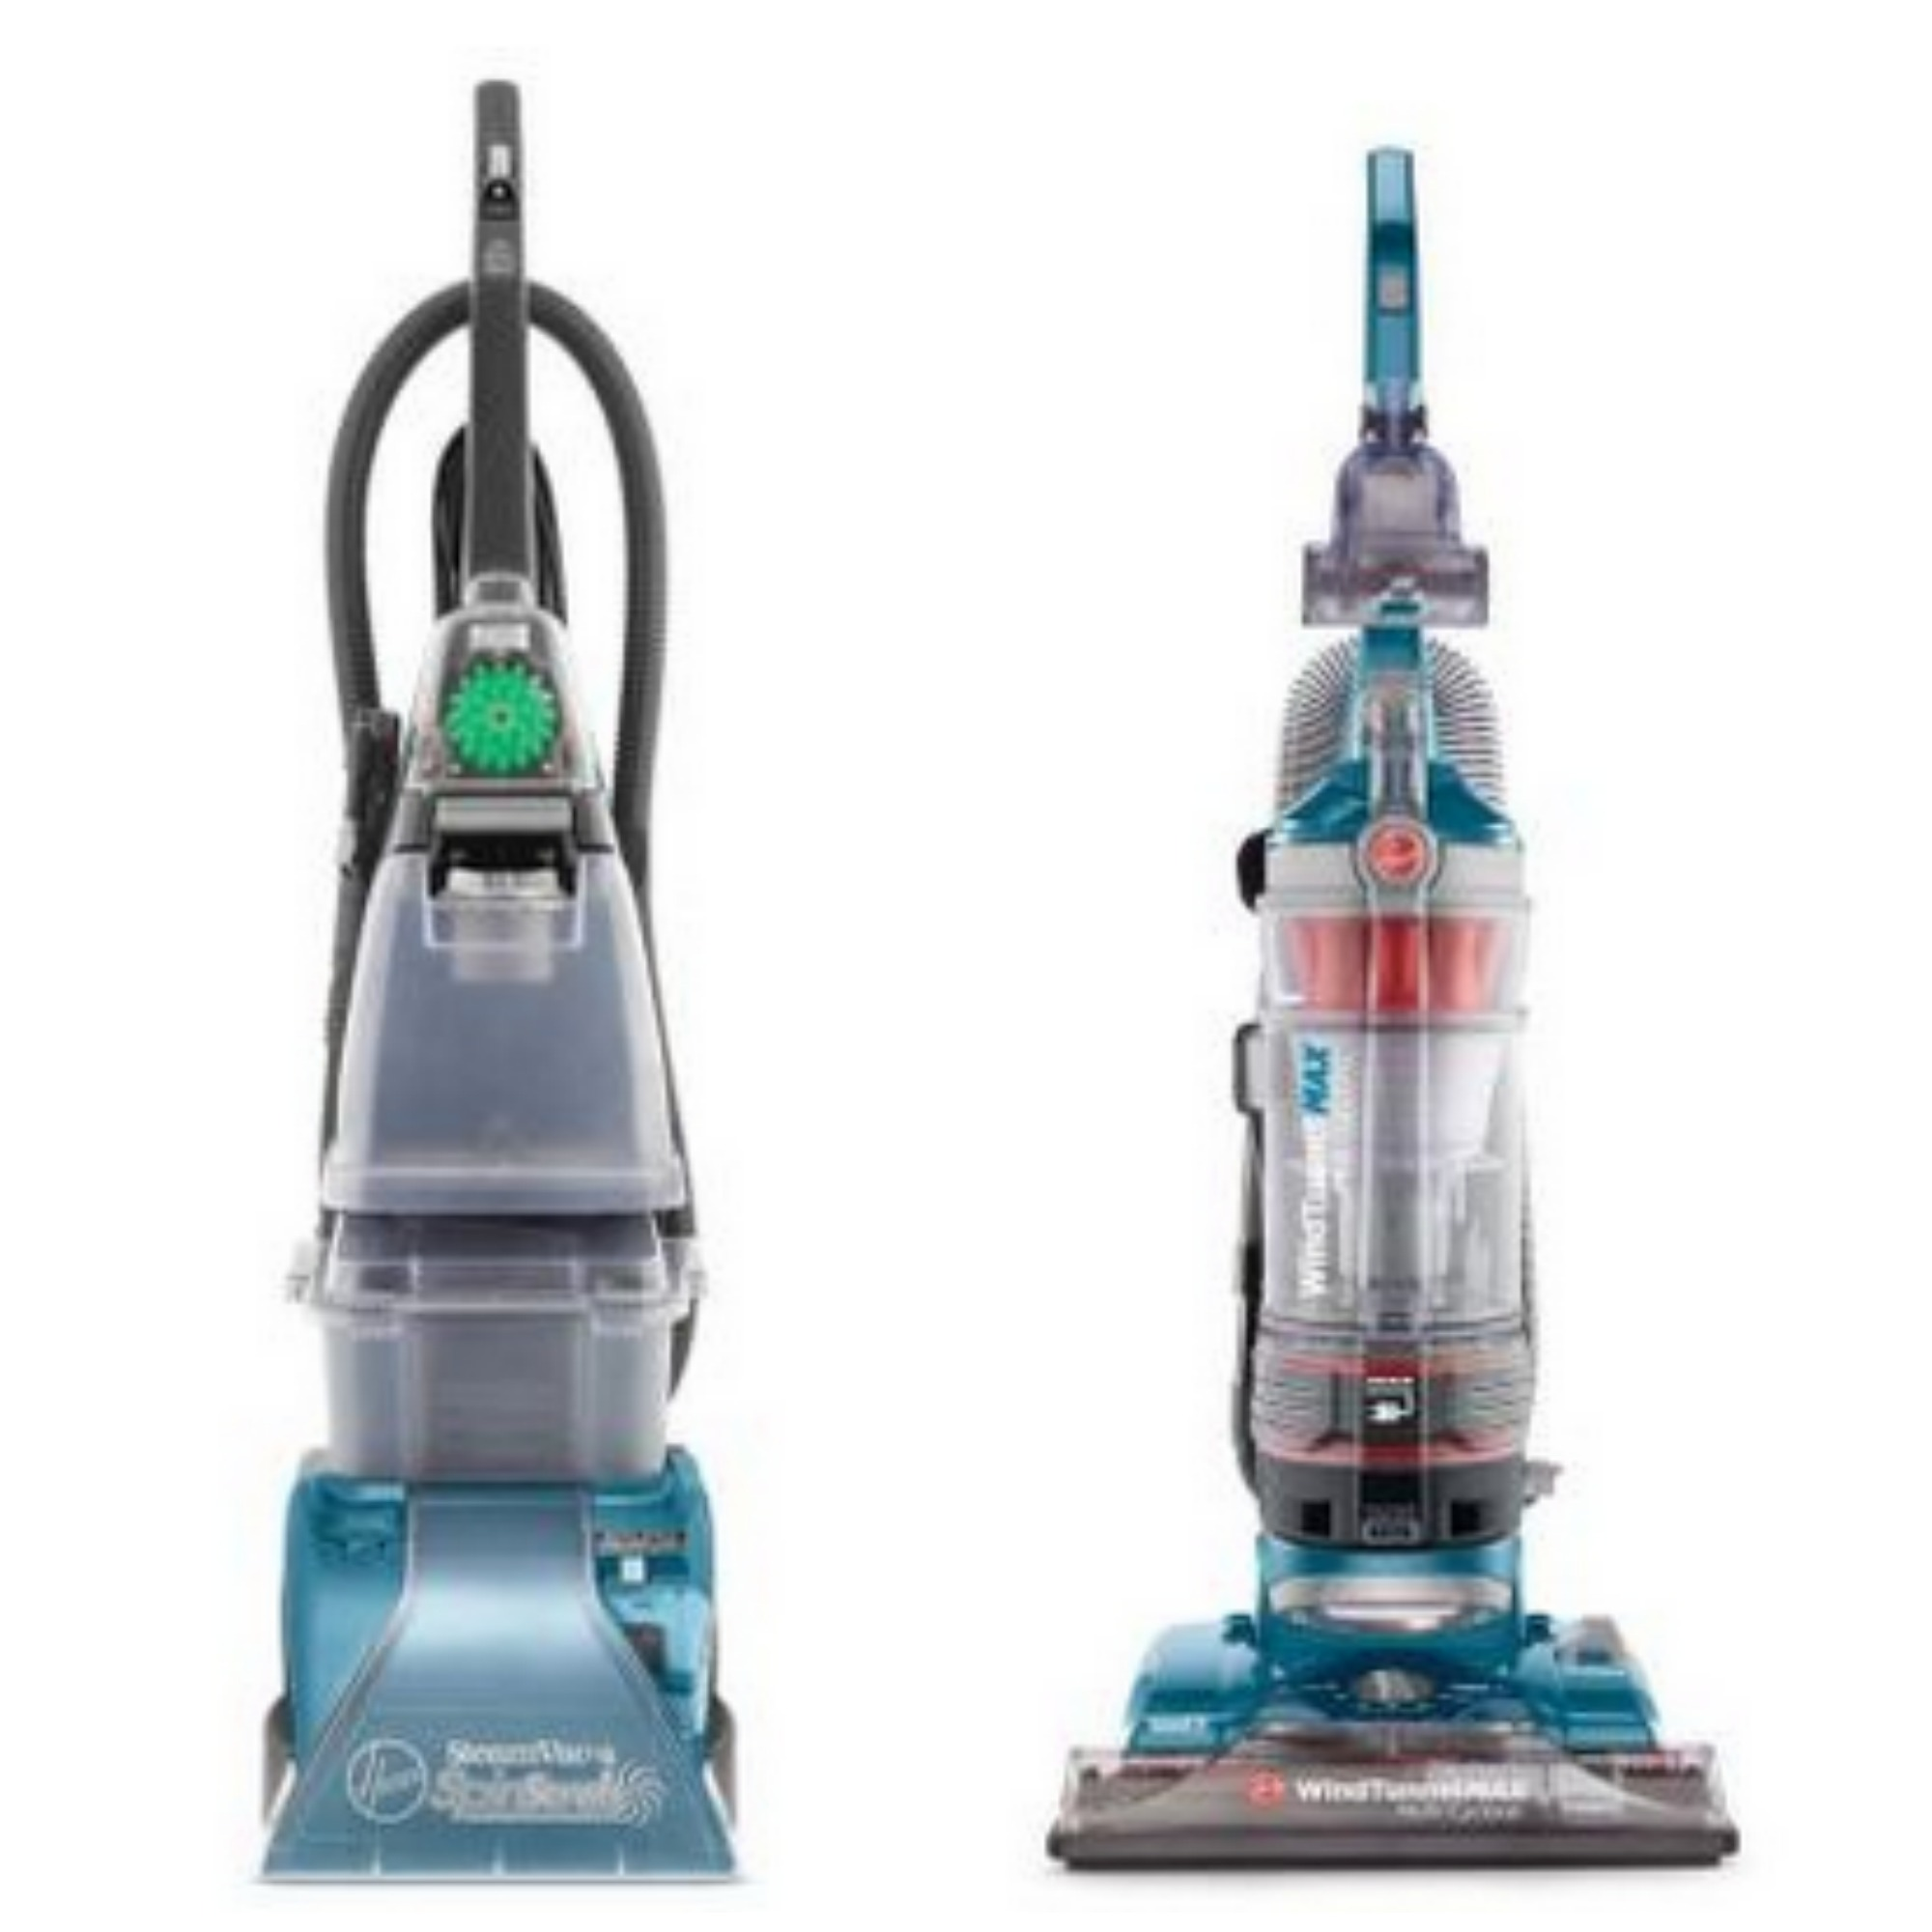 Home Depot Hoover Carpet Cleaner Or Vacuum Cleaner 98 Each 6 16 Only My Frugal Adventures